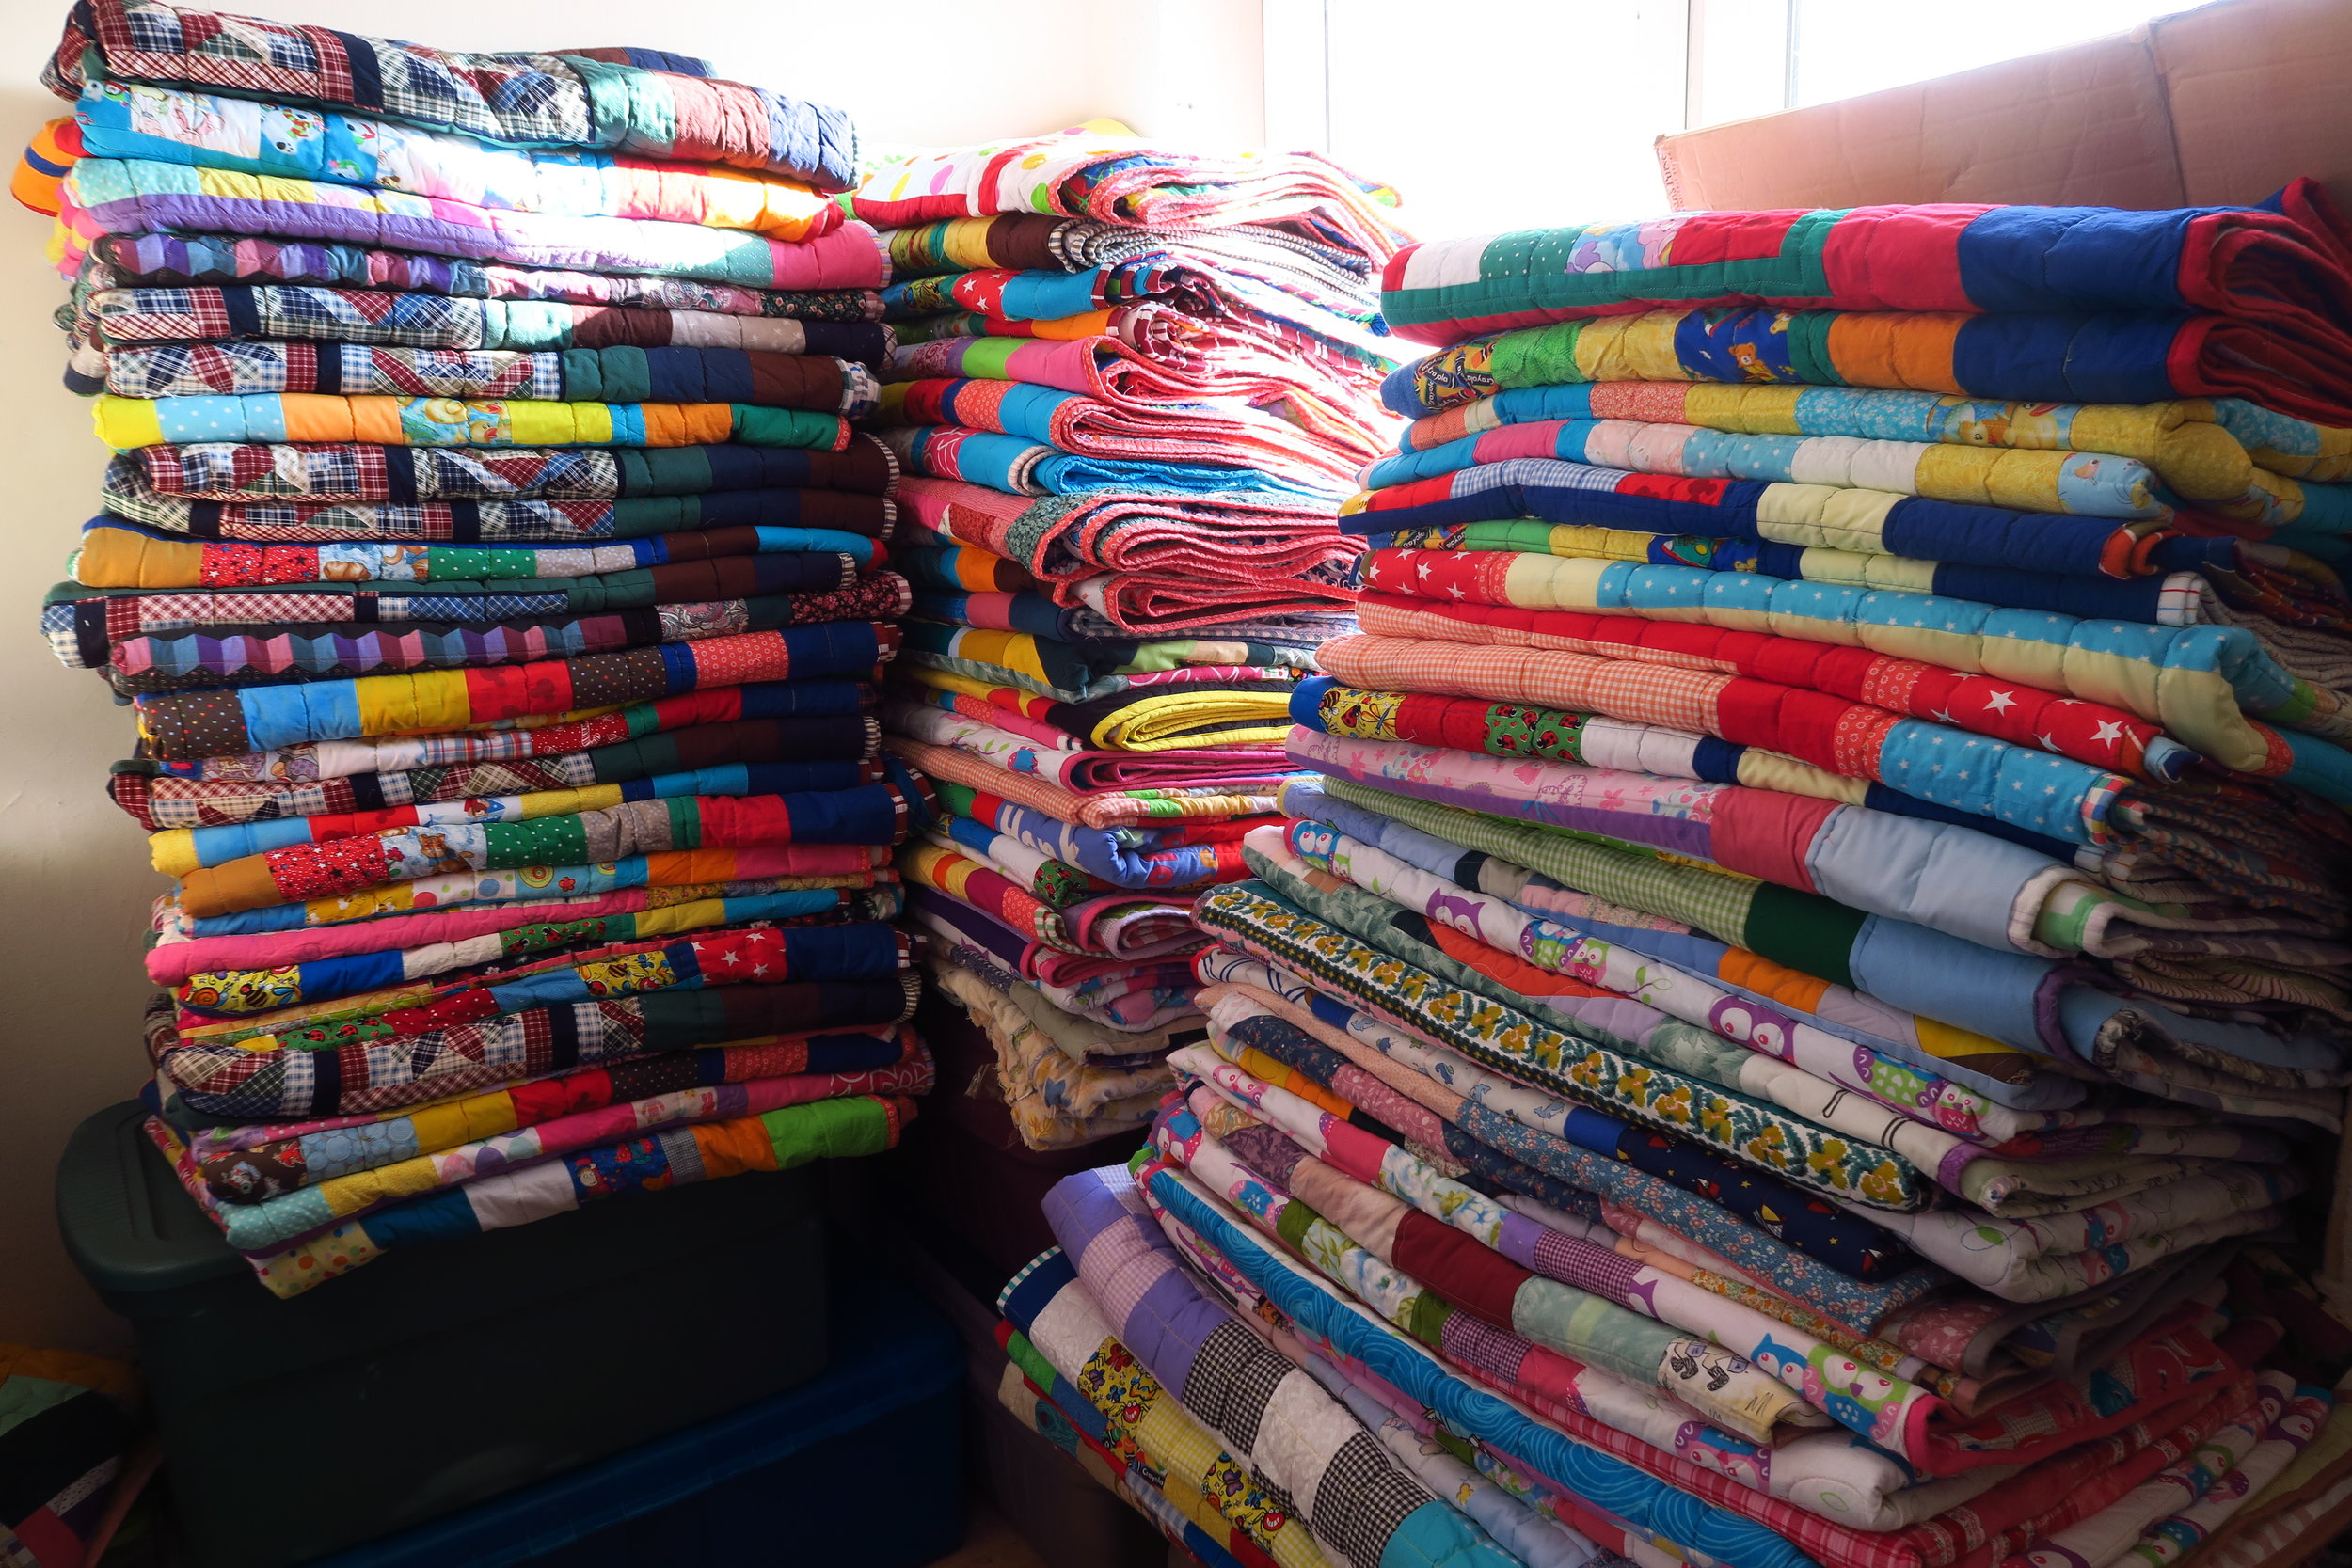 This is with these quilts added to my piles.  It is fun to see these grow higher and higher!  I think it looks neat!